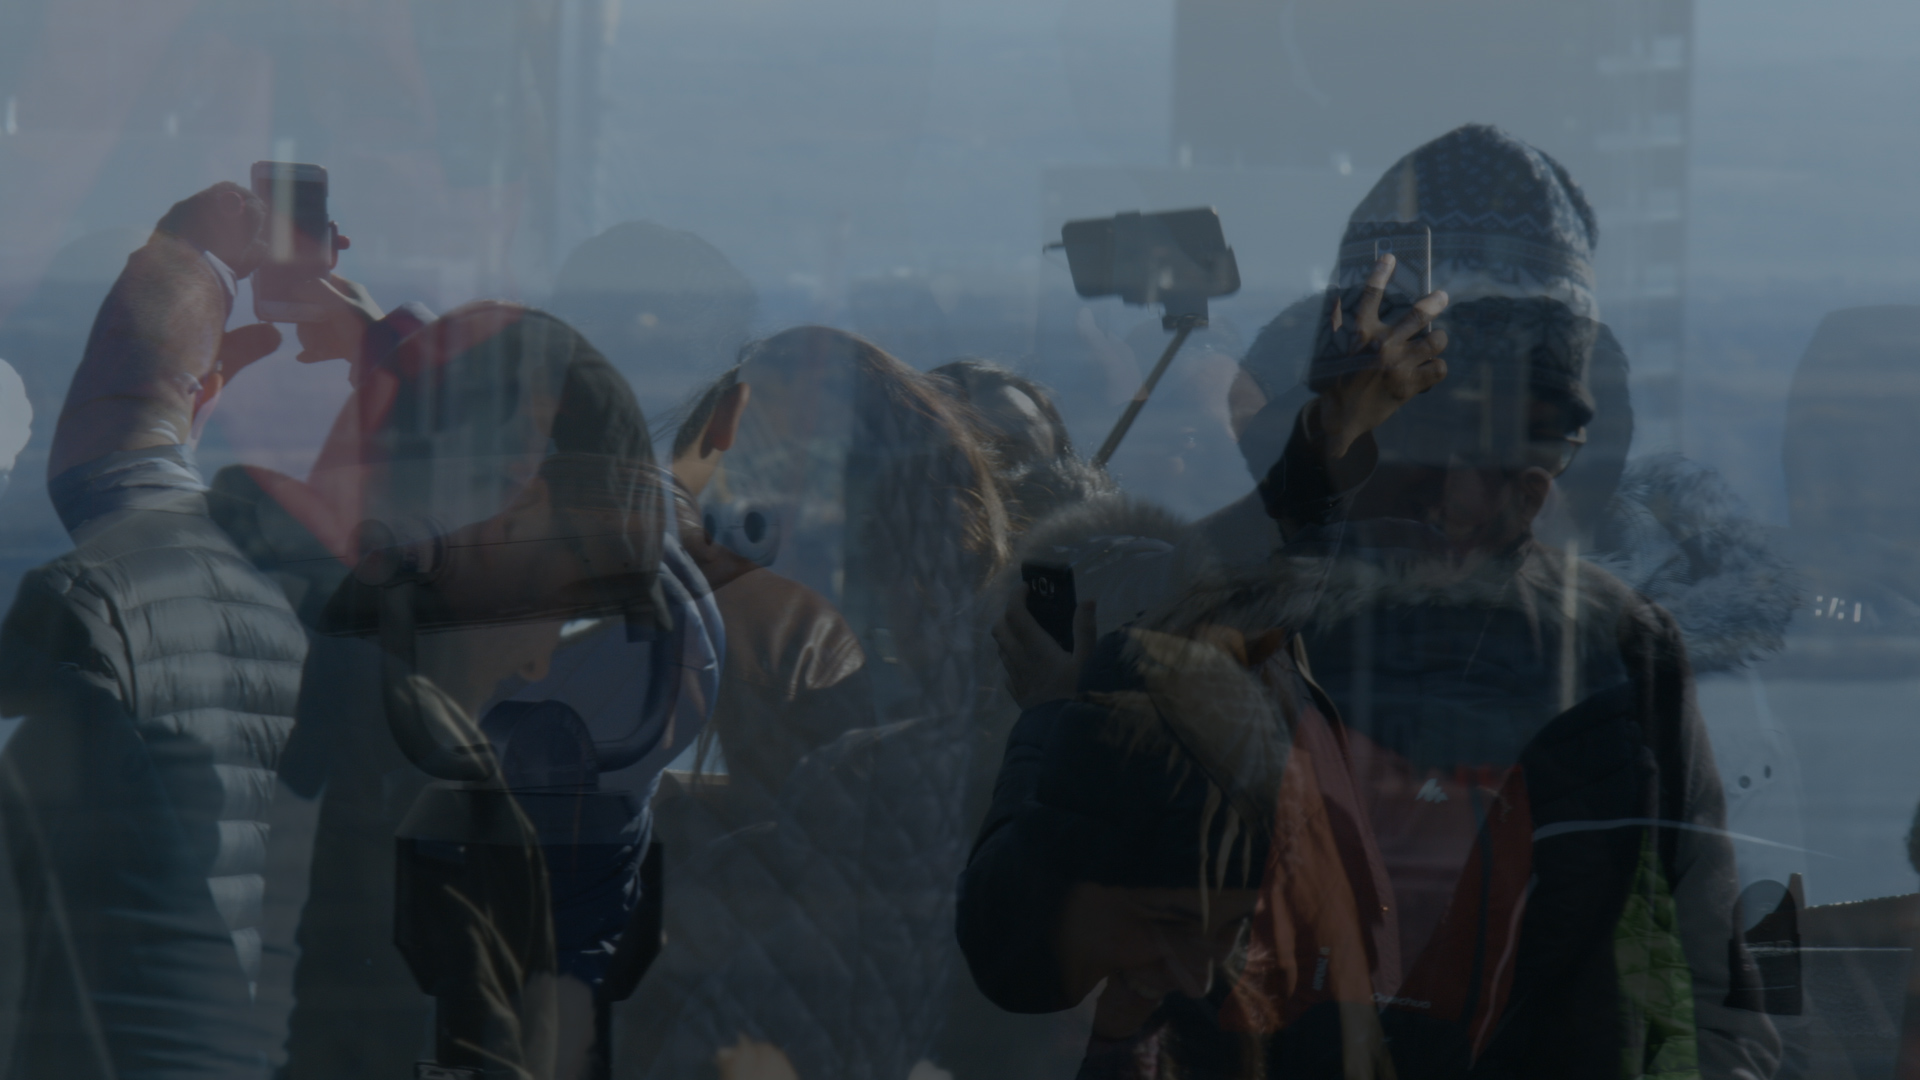 La Montagne  2019 | HD | Color | Stereo | 11min  Repeated gesture of panoramic representation becomes abstraction. This film takes place on the Kondiaronk Belvedere where people come to see the Montreal skyline and its surrounding landscape.  2019 Festival du Nouveau Cinéma (Canada) — October 9-20